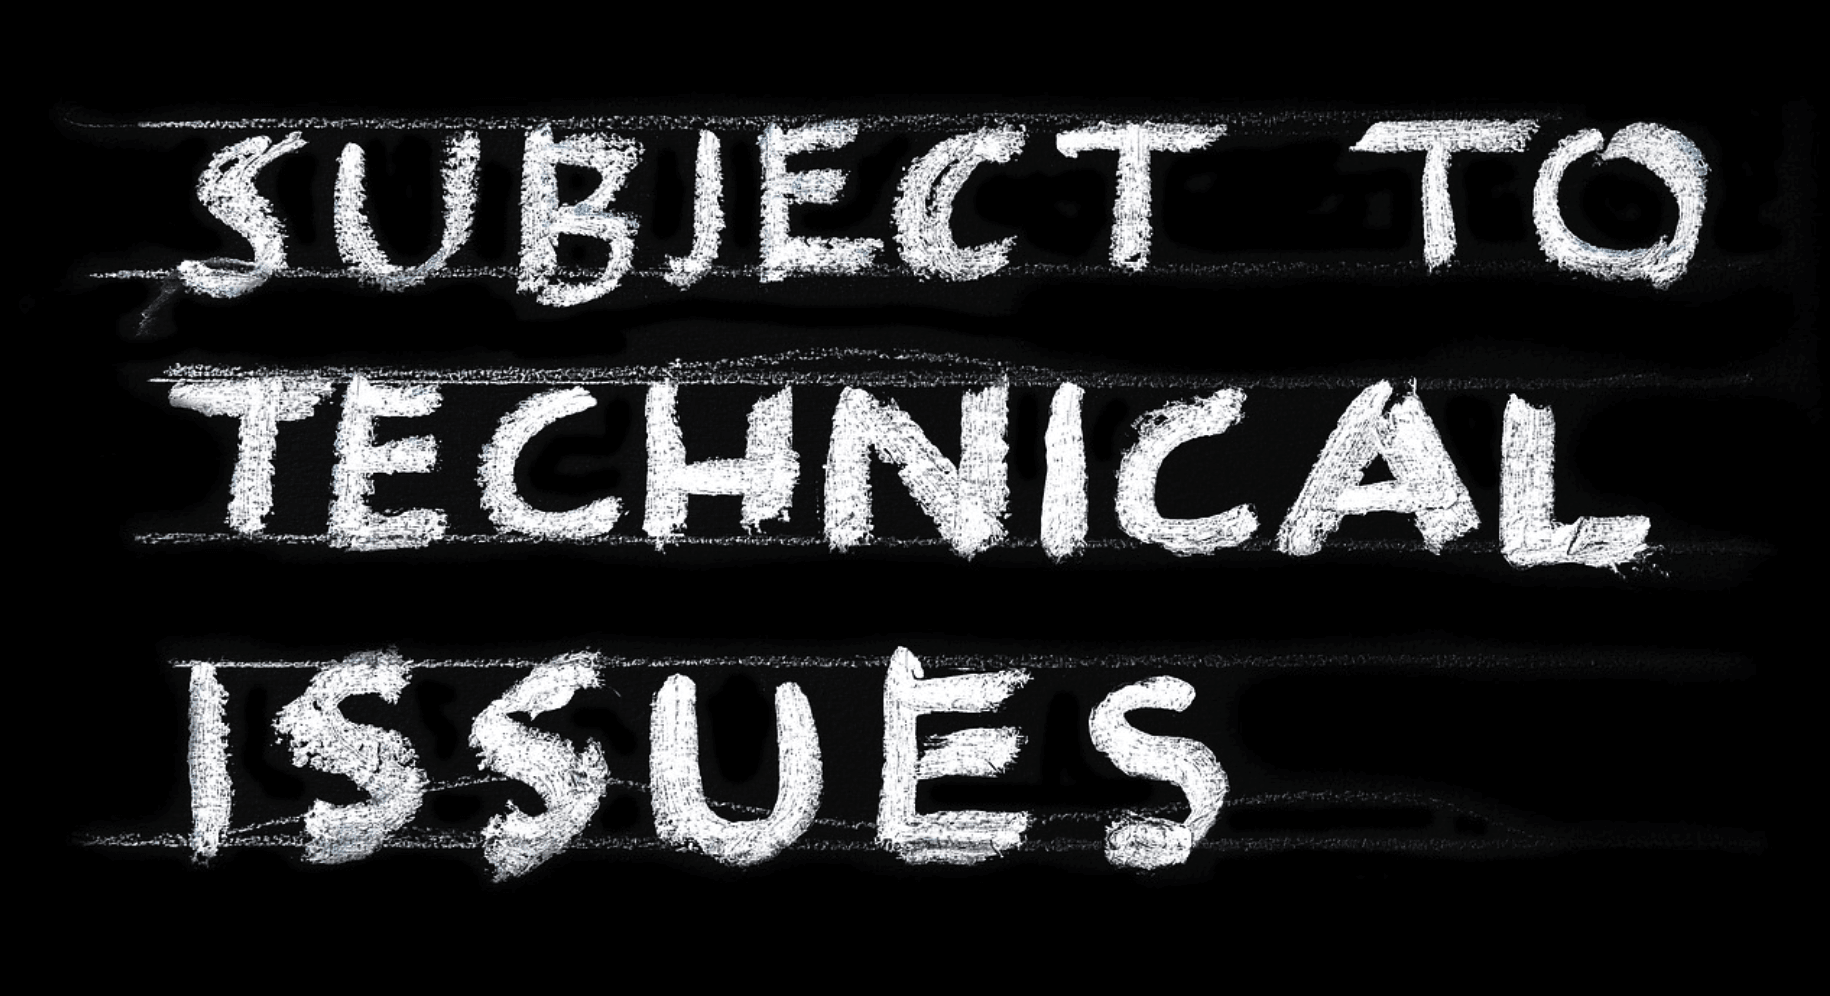 subject to technical issues - free image from https://pixabay.com/en/problem-technical-issues-technology-1951987/